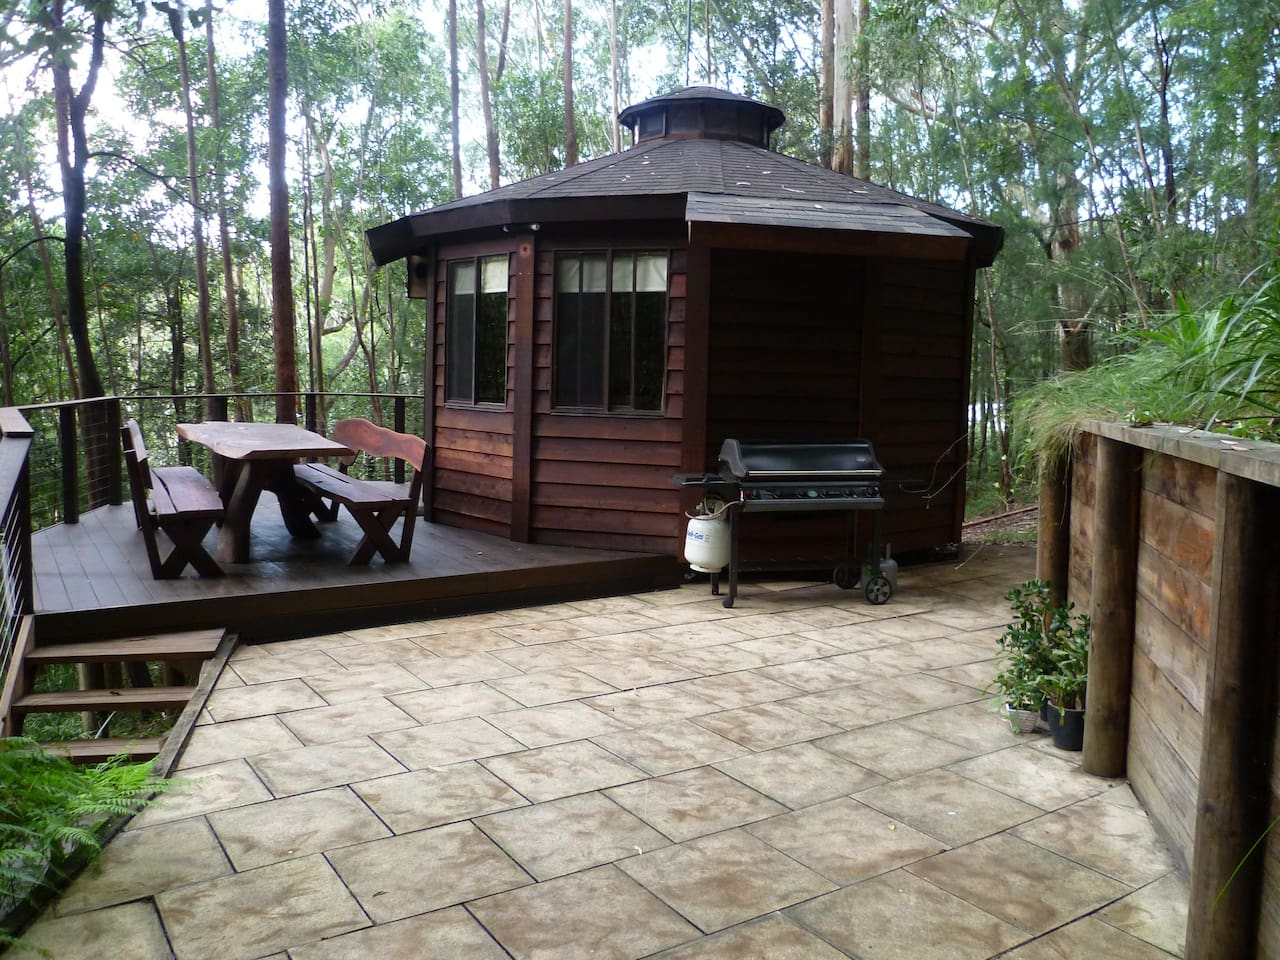 The Yurt with BBQ and outdoor dining table.